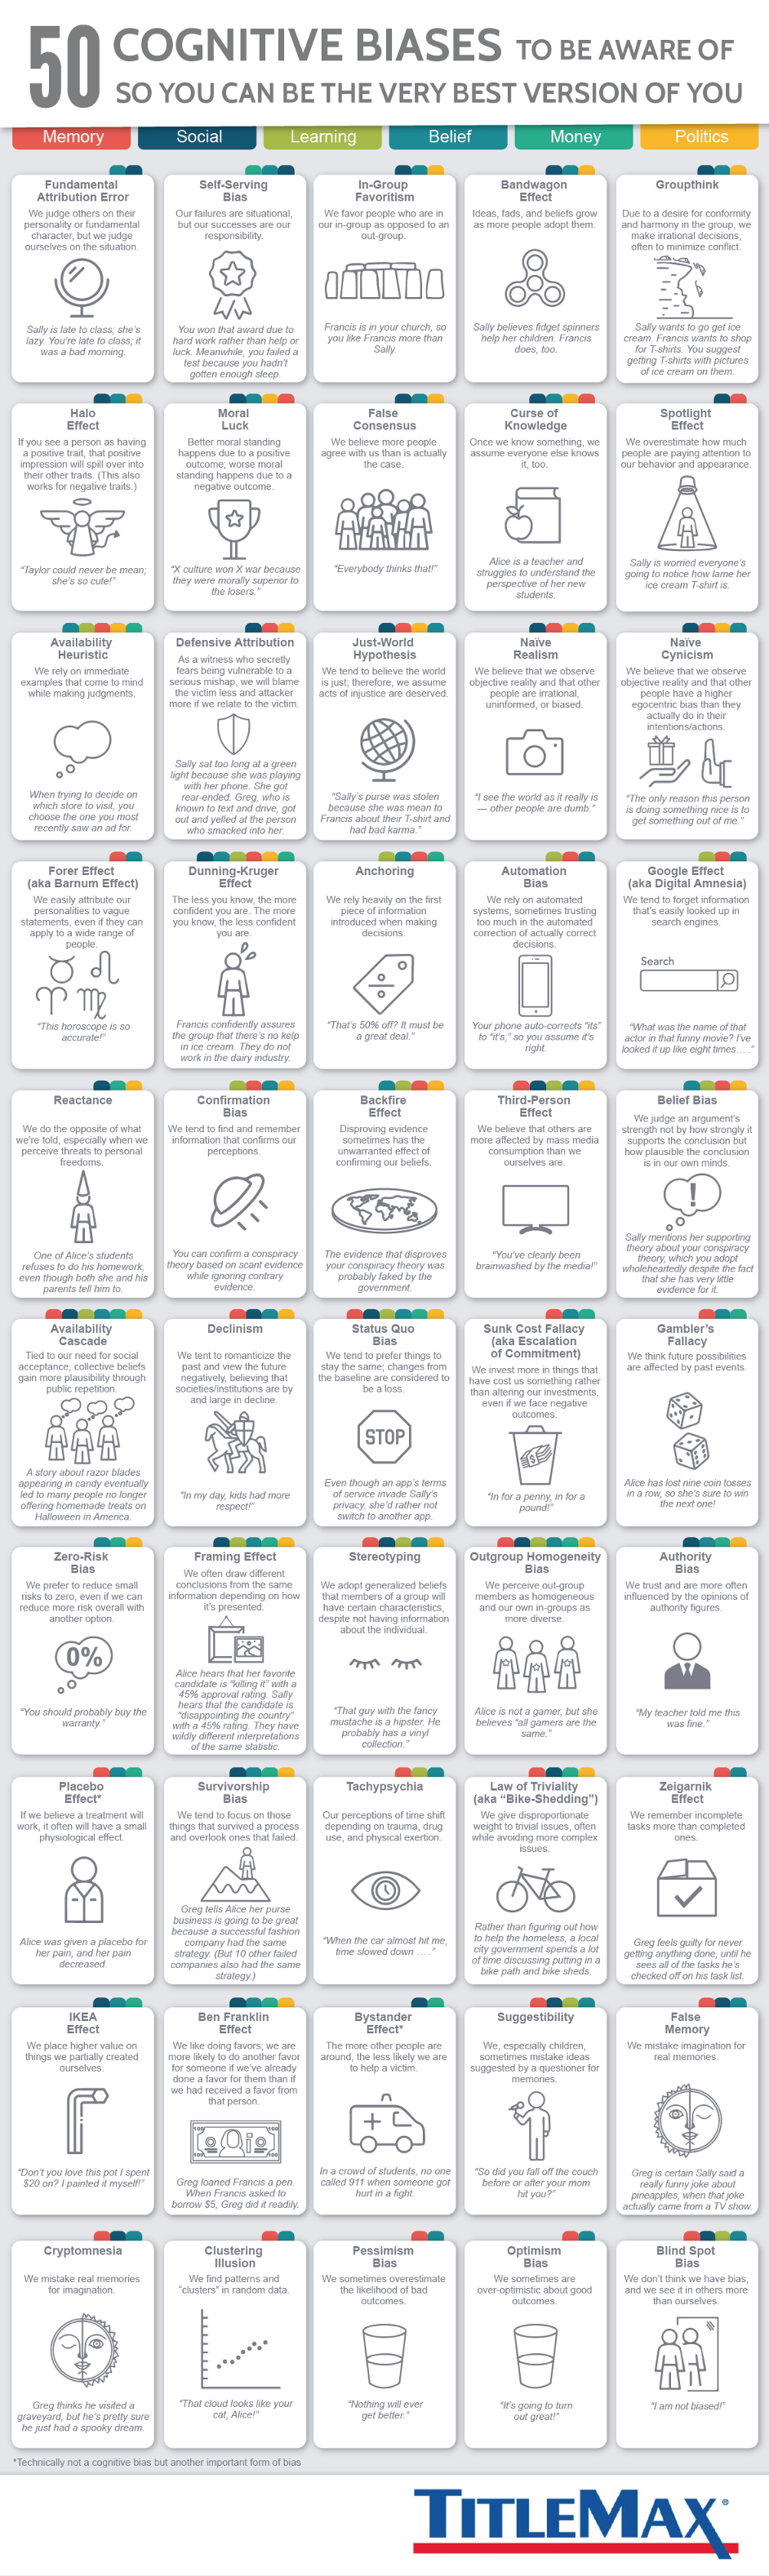 50 Cognitive Biases to Be Aware of So You Can Be the Very Best Version Ofyou #infographic